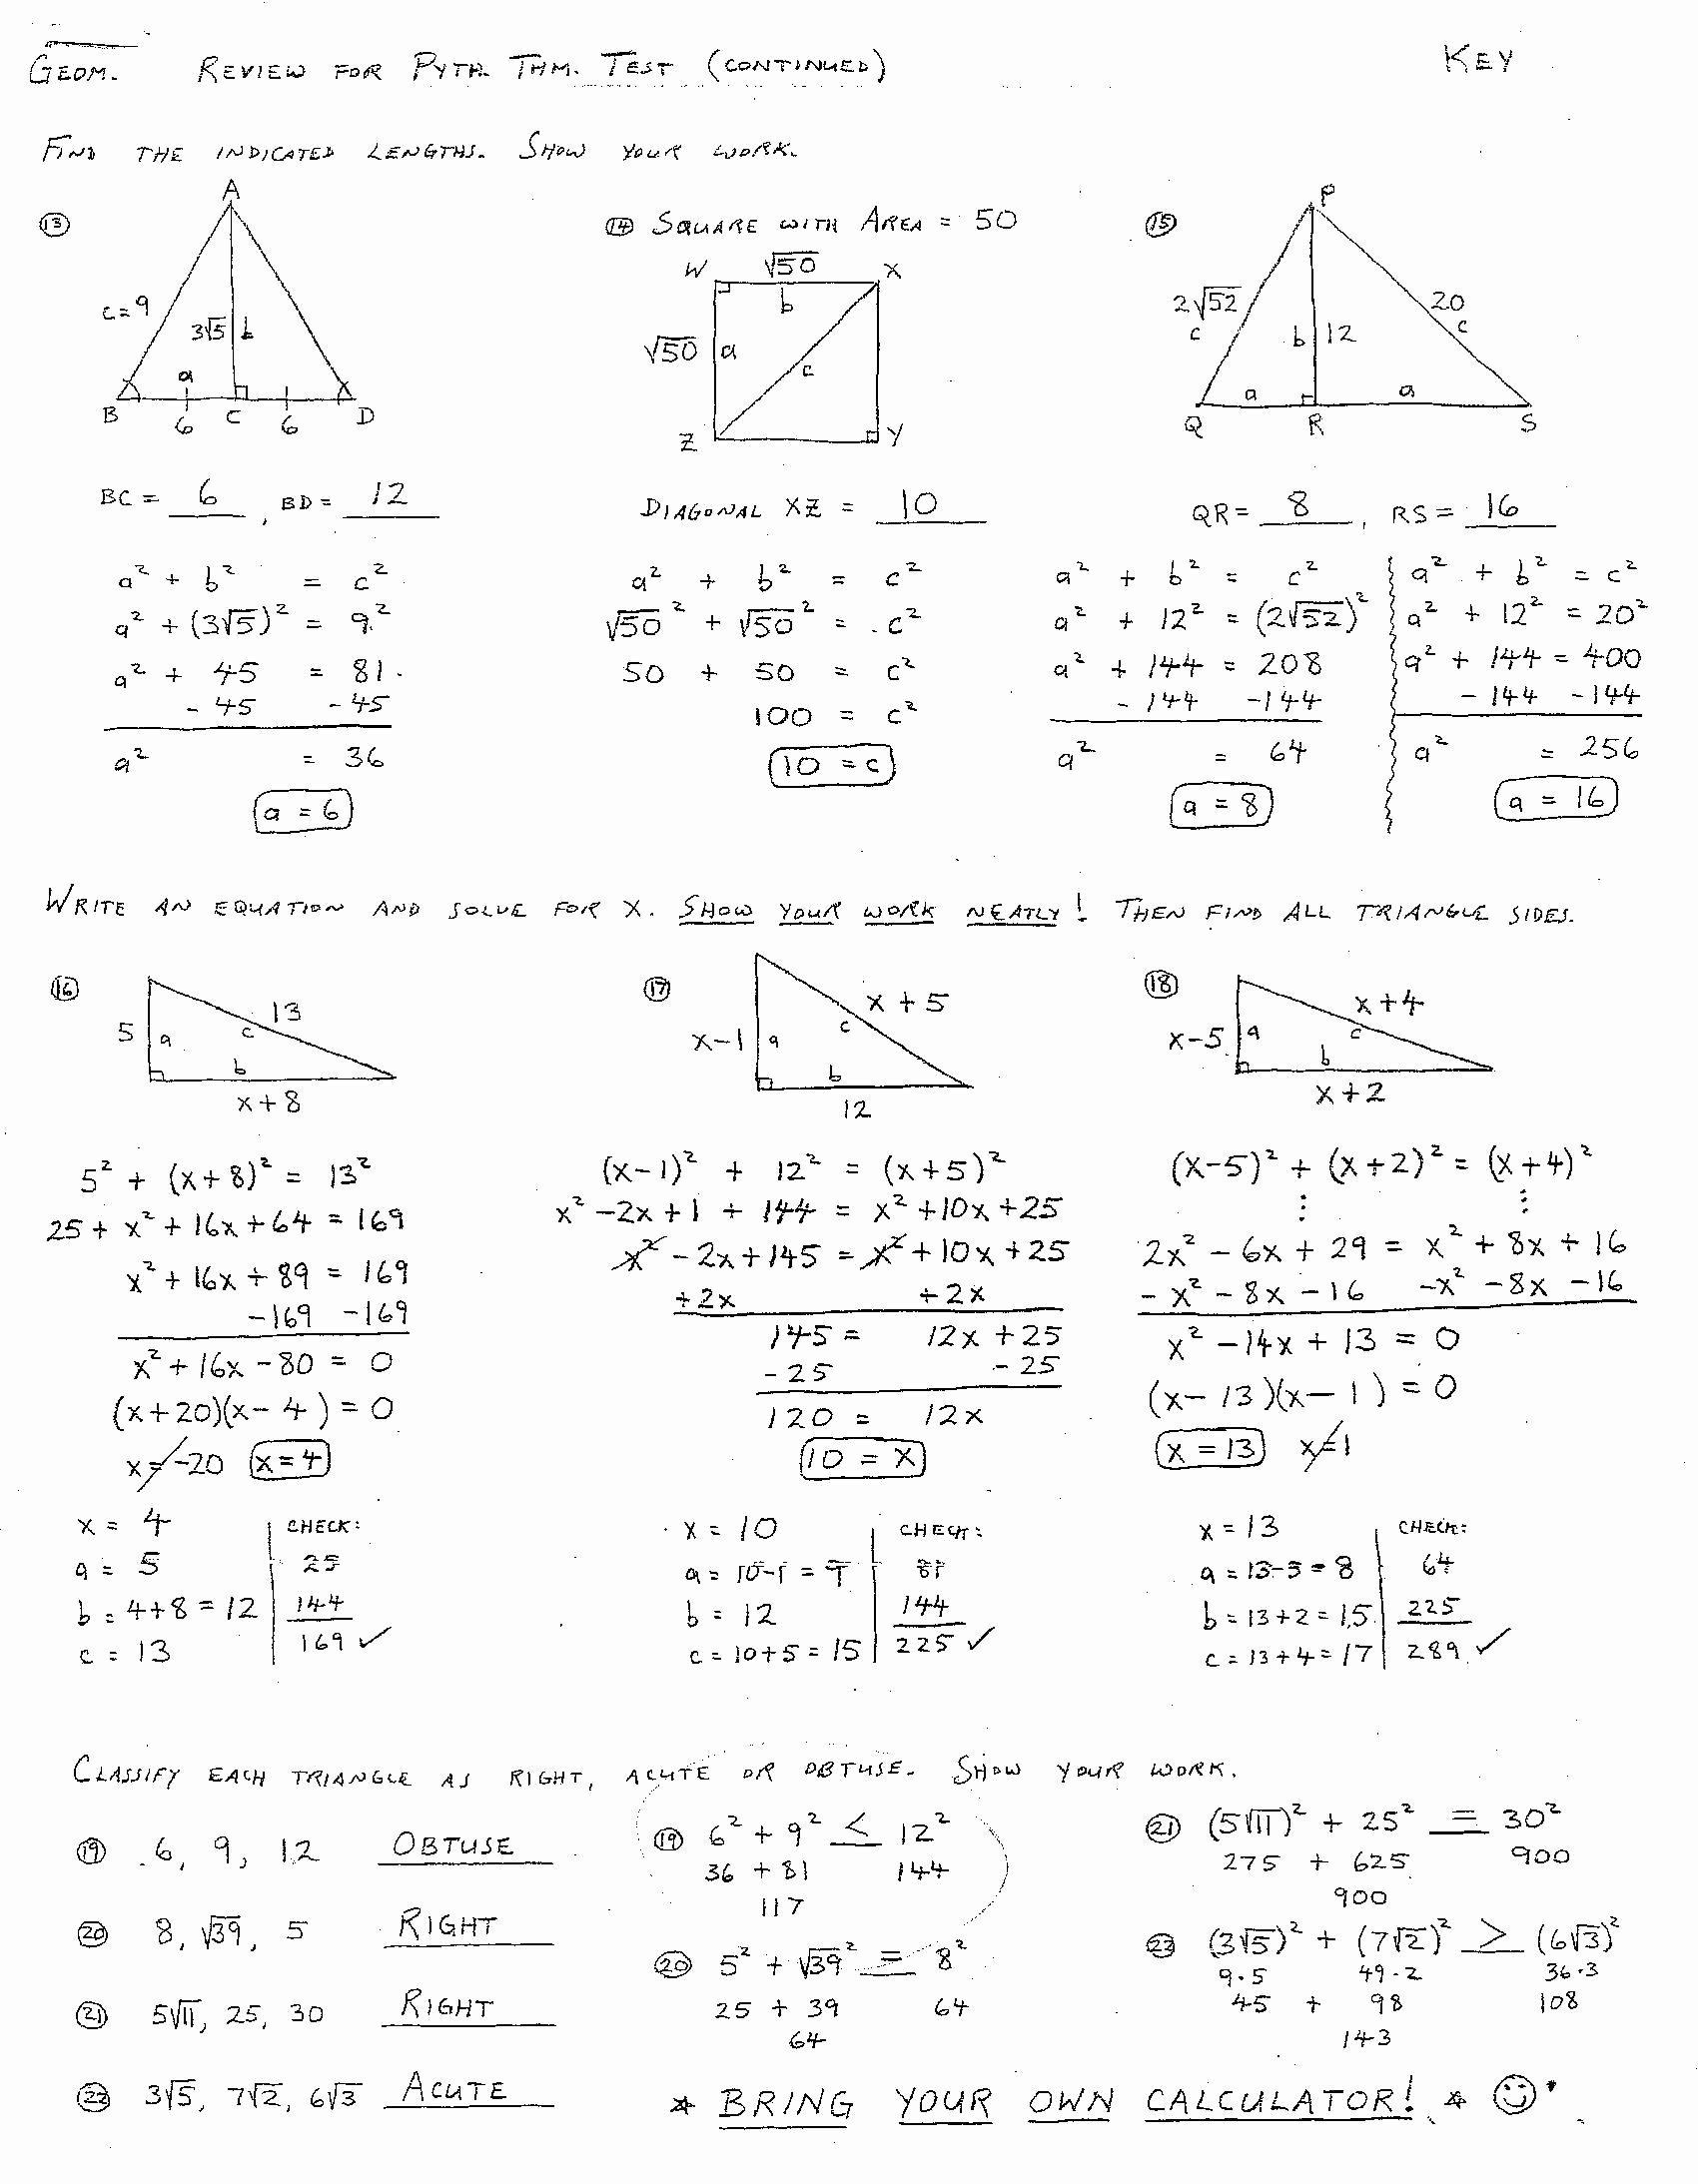 Geometry Worksheet Congruent Triangles Answers Luxury Proving Triangles Congruent Worksheet Answer Key